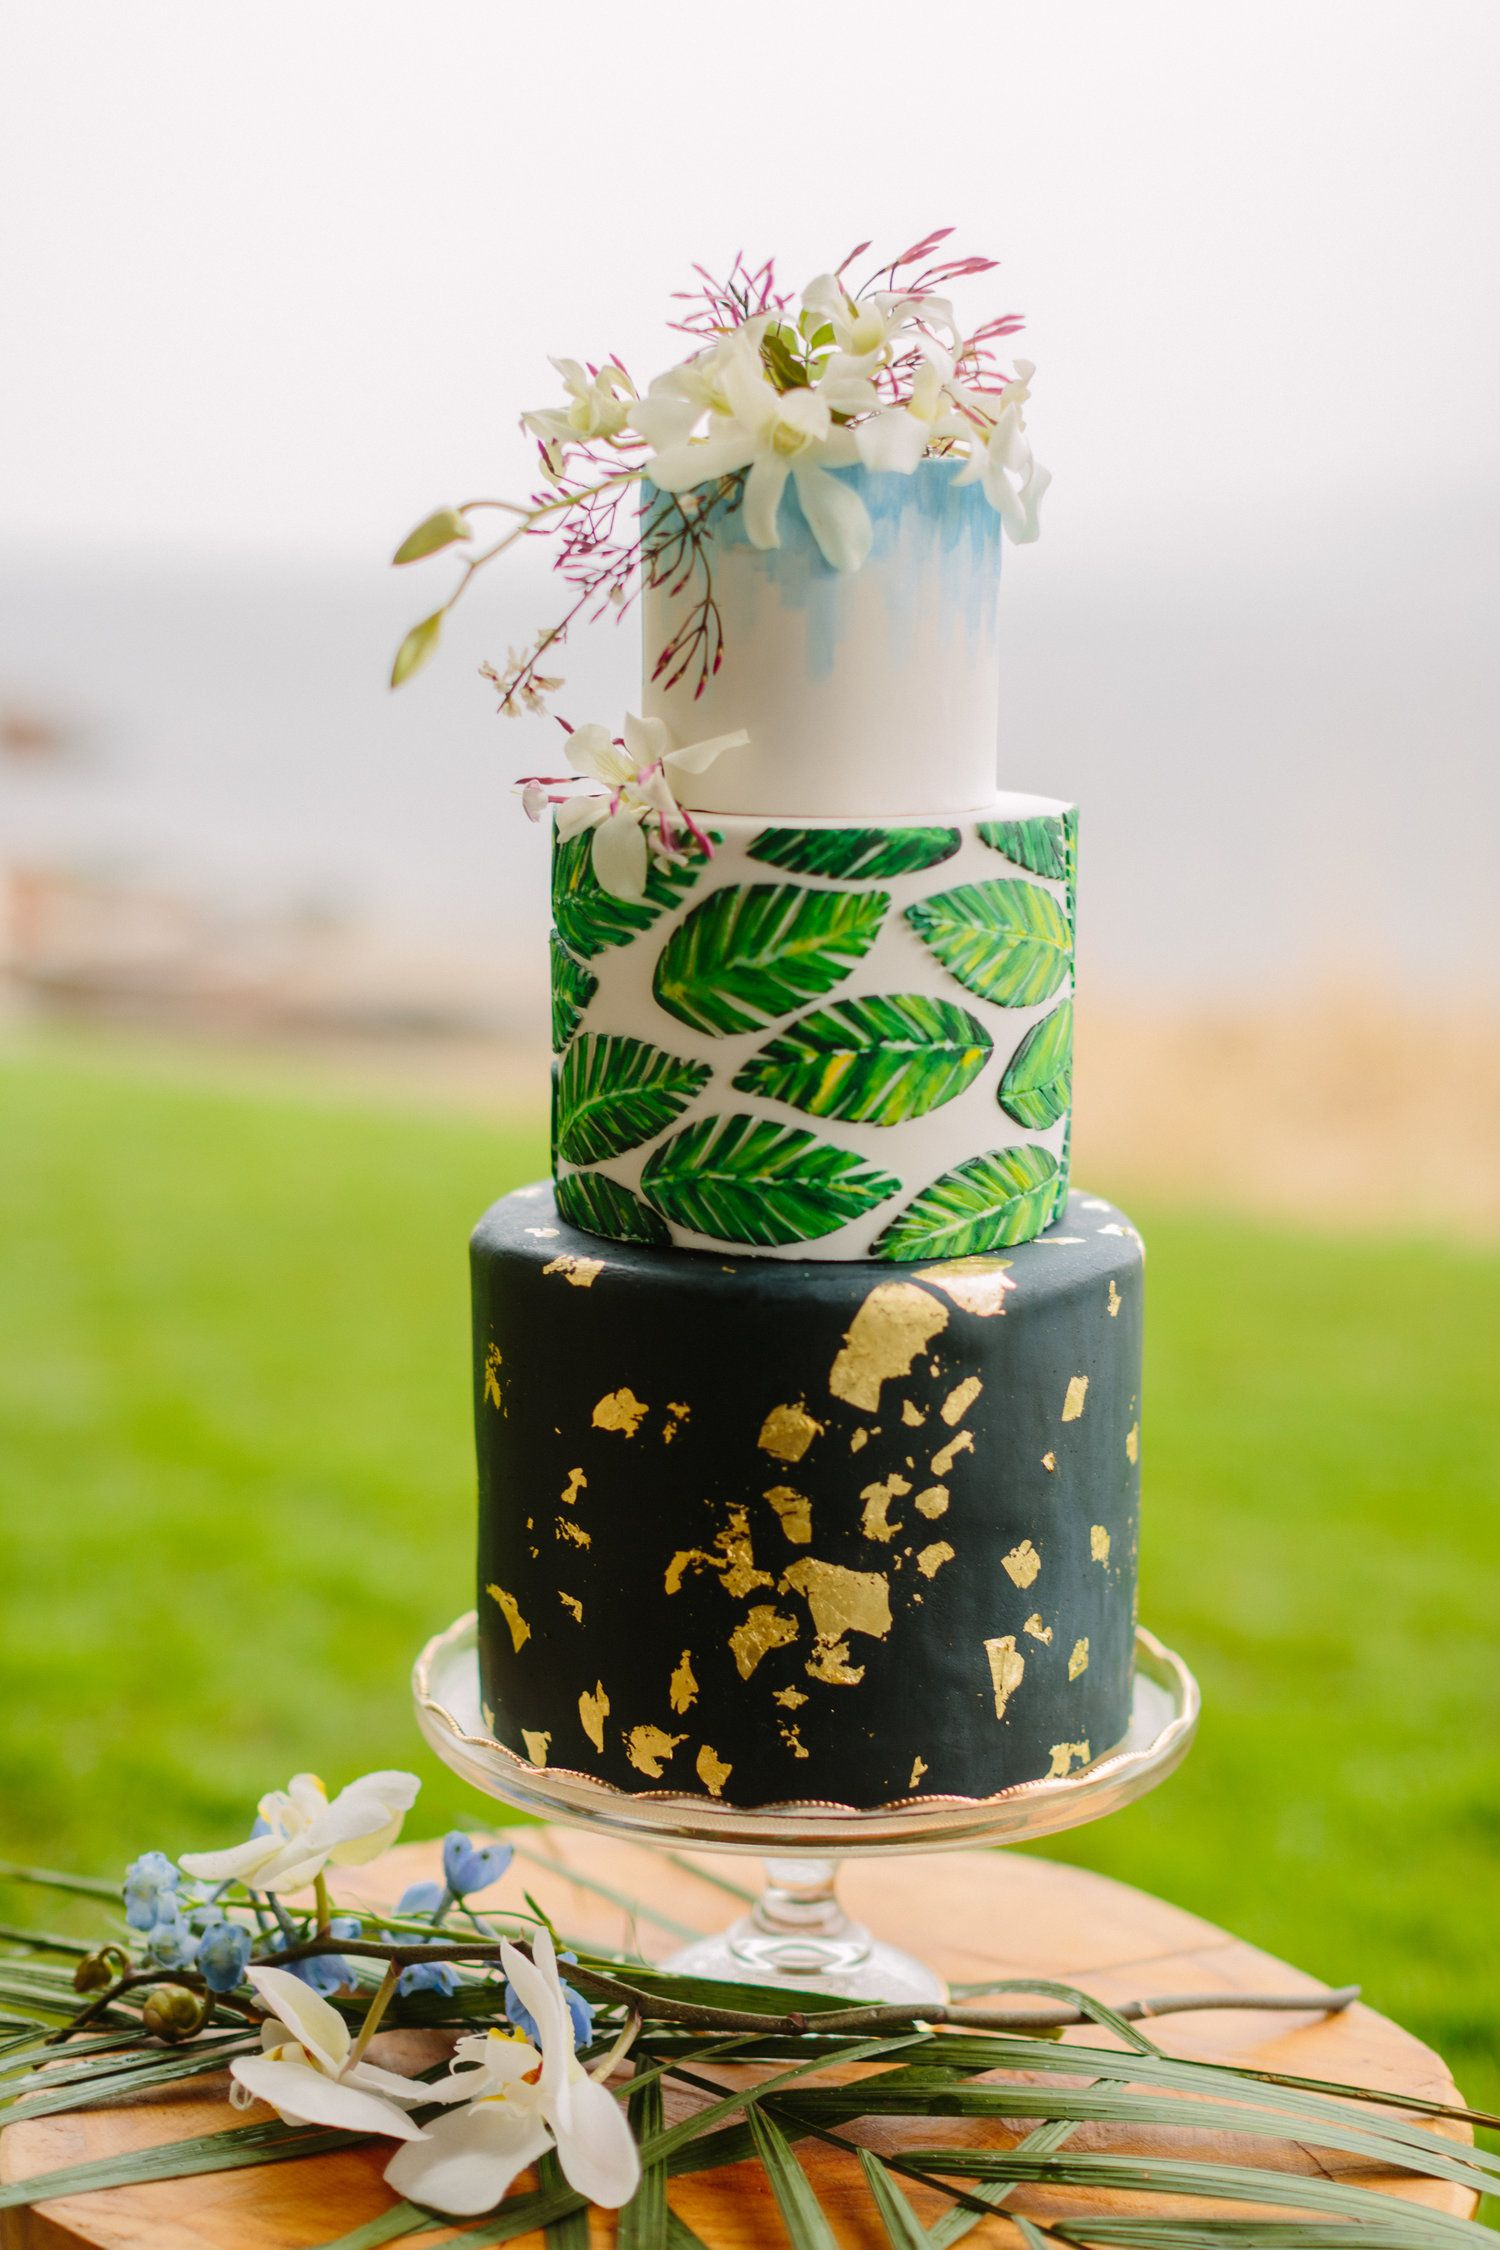 Tropical 3 Tier Fondant Wedding Cake By Blue Box Bakery Courtney Bowlden Photography